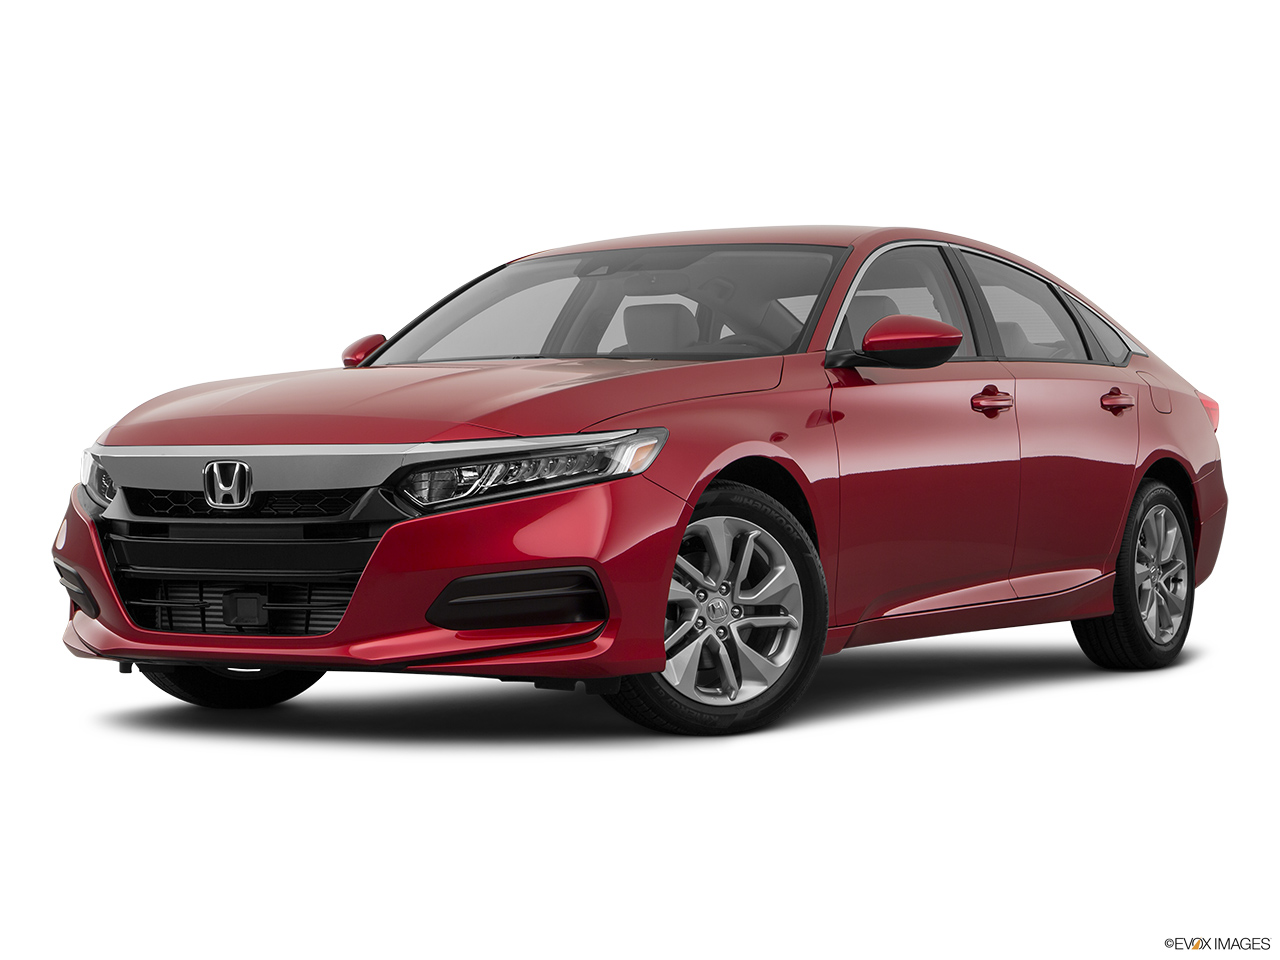 Car Pictures List For Honda Accord 2018 1 5t Lx Uae